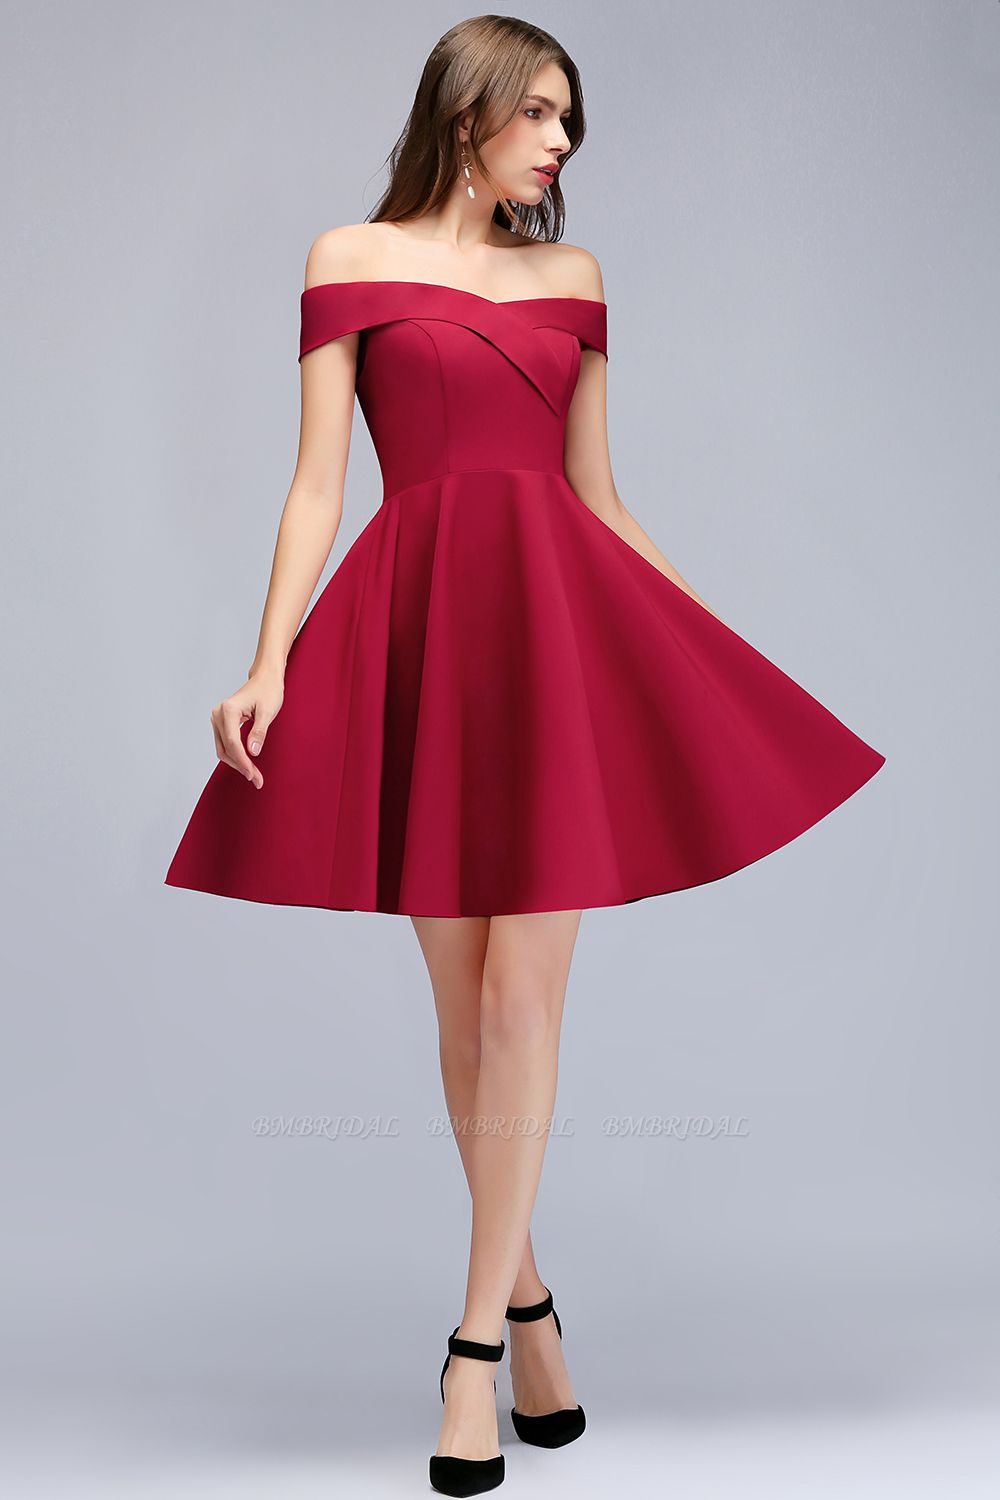 BMbridal A-line Off-the-shoulder Short Burgundy Homecoming Dress